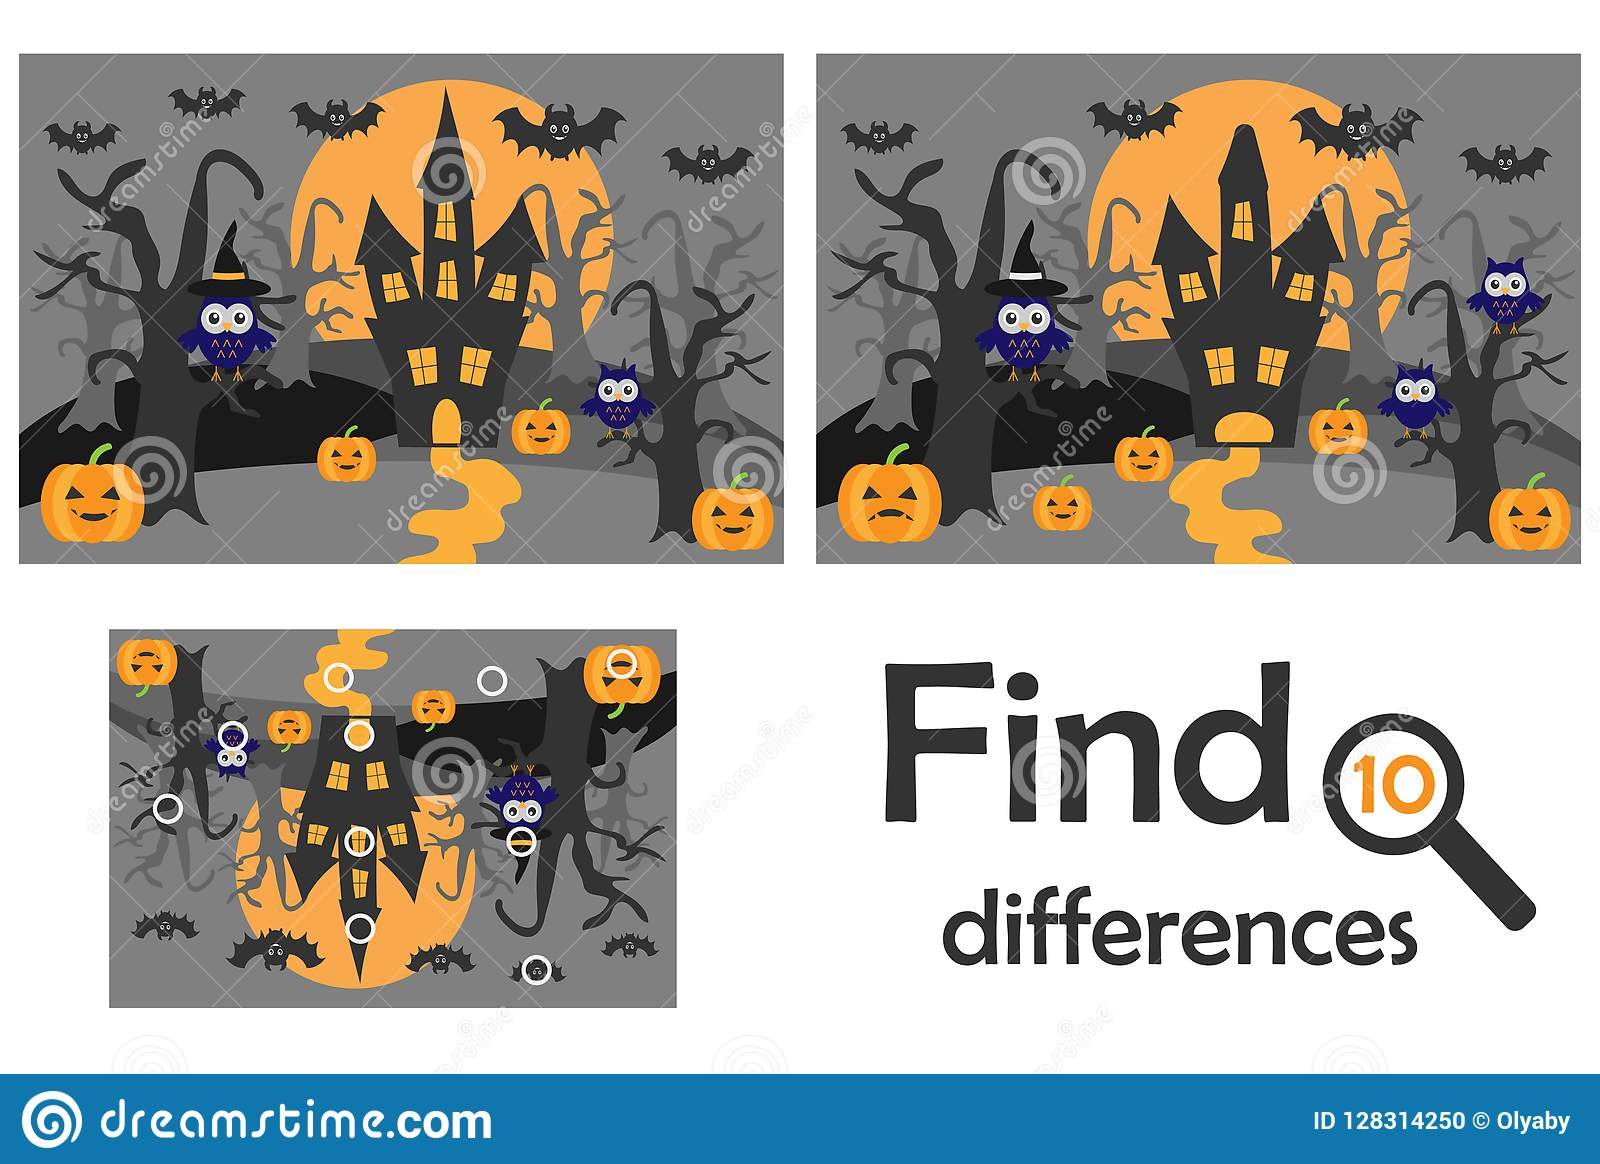 Find 10 differences, game for children, halloween in cartoon style, education game for kids, preschool worksheet activity, task fo